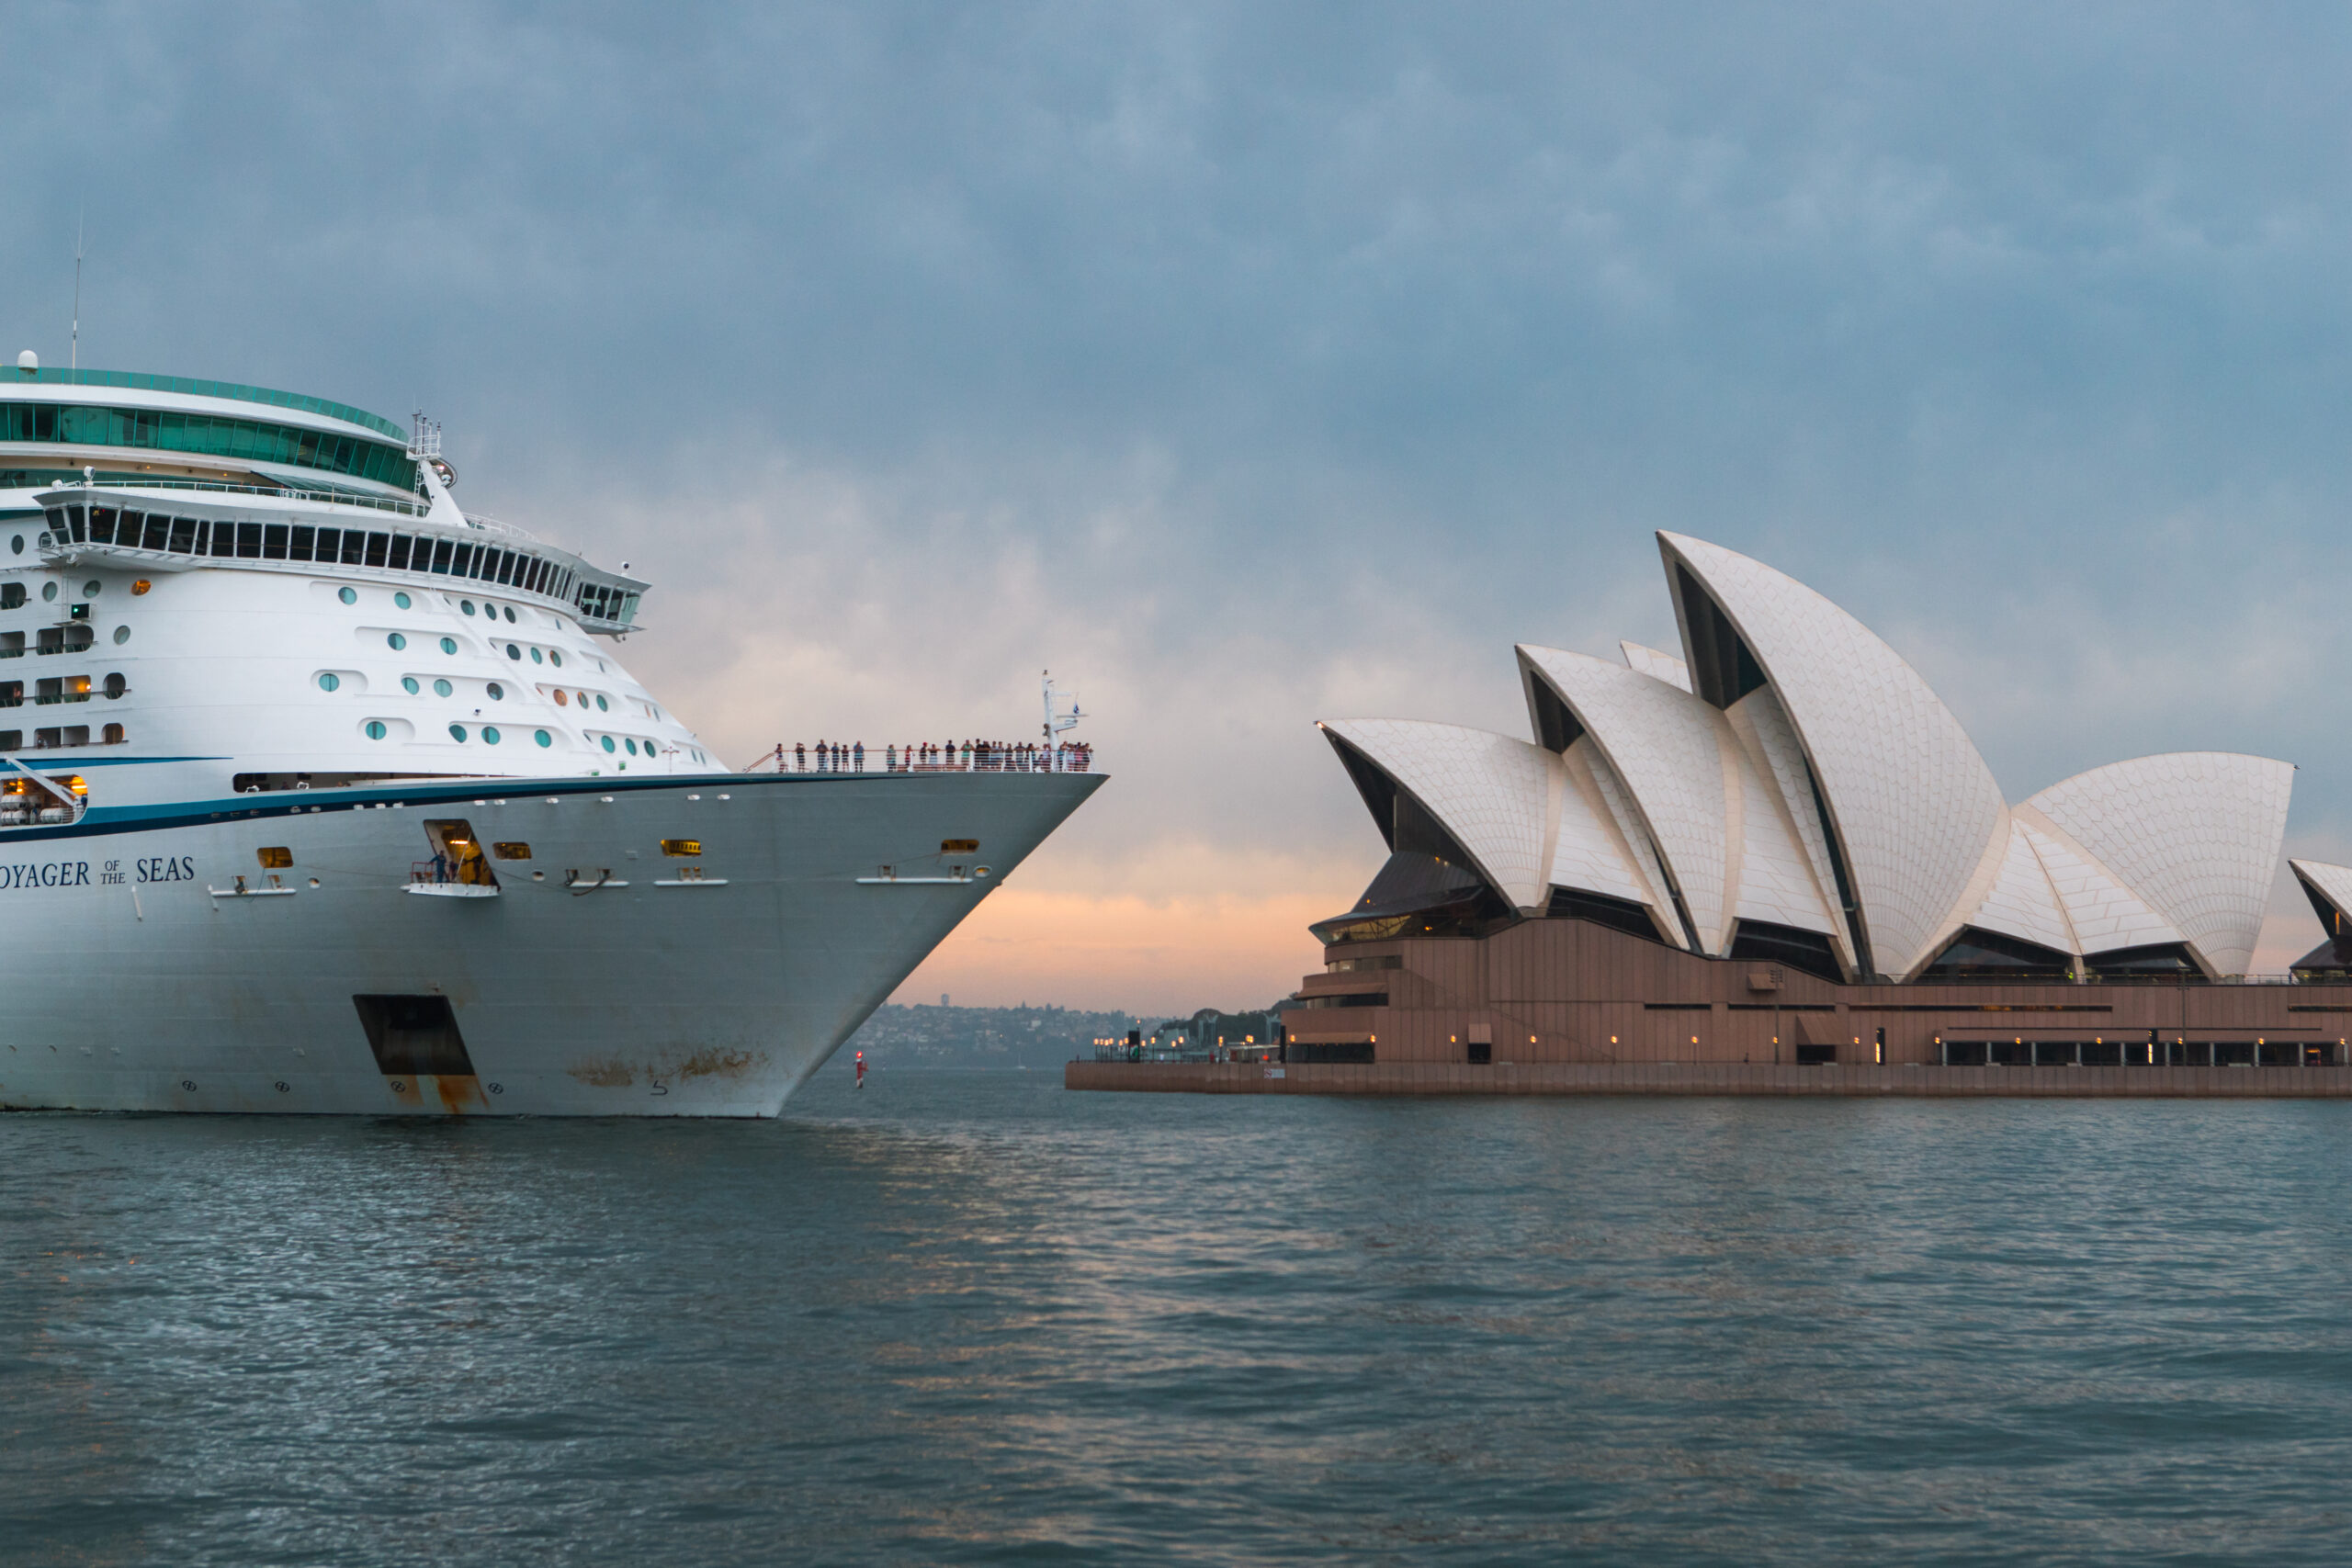 Australian Cruise Sector's Economic Impact Rises To $5.2 Billion – CLIA